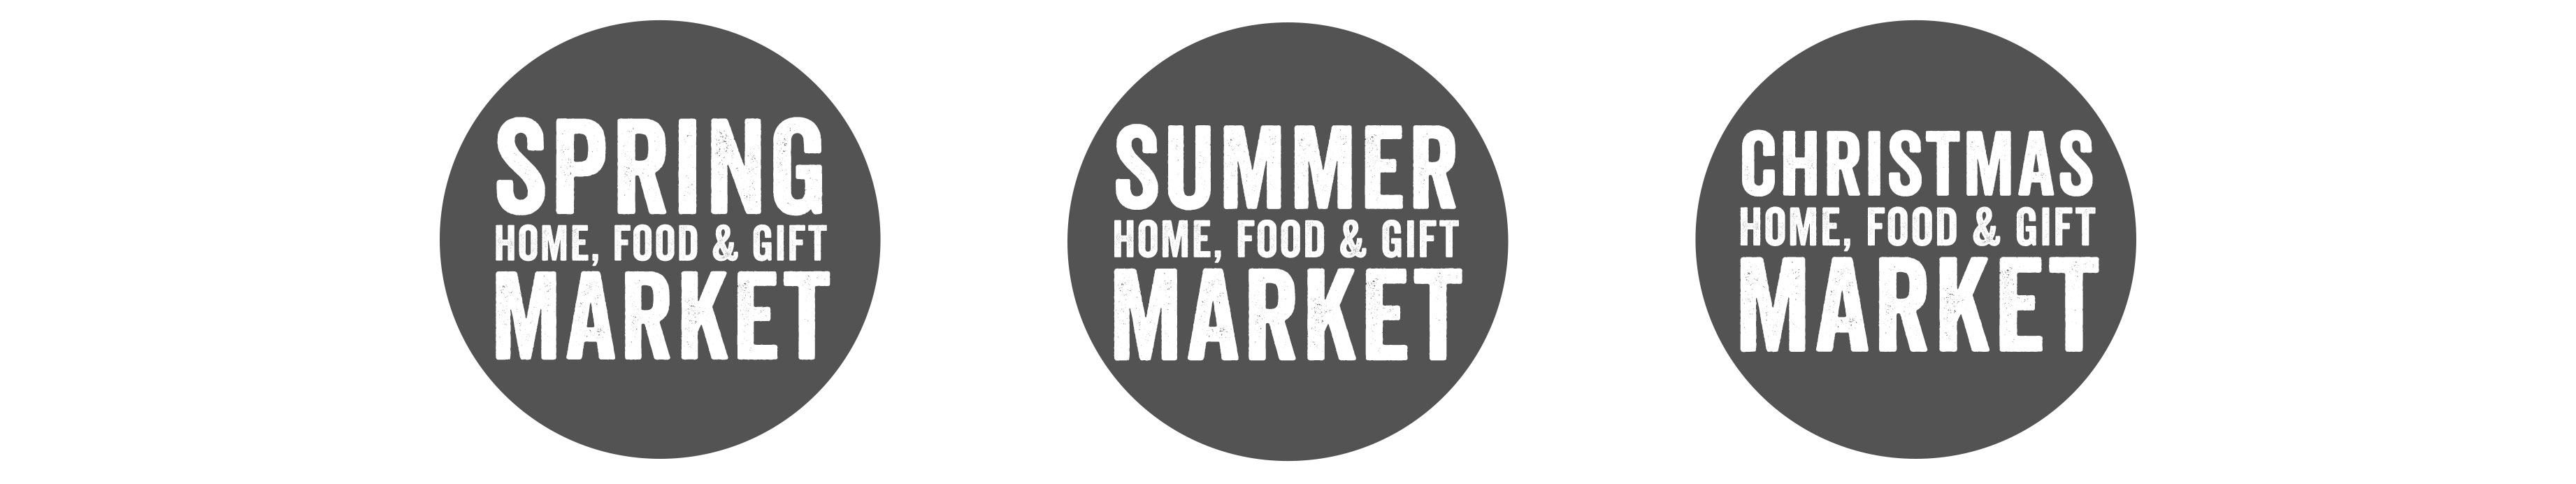 spring summer christmas markets roundhouse derby fabulous places